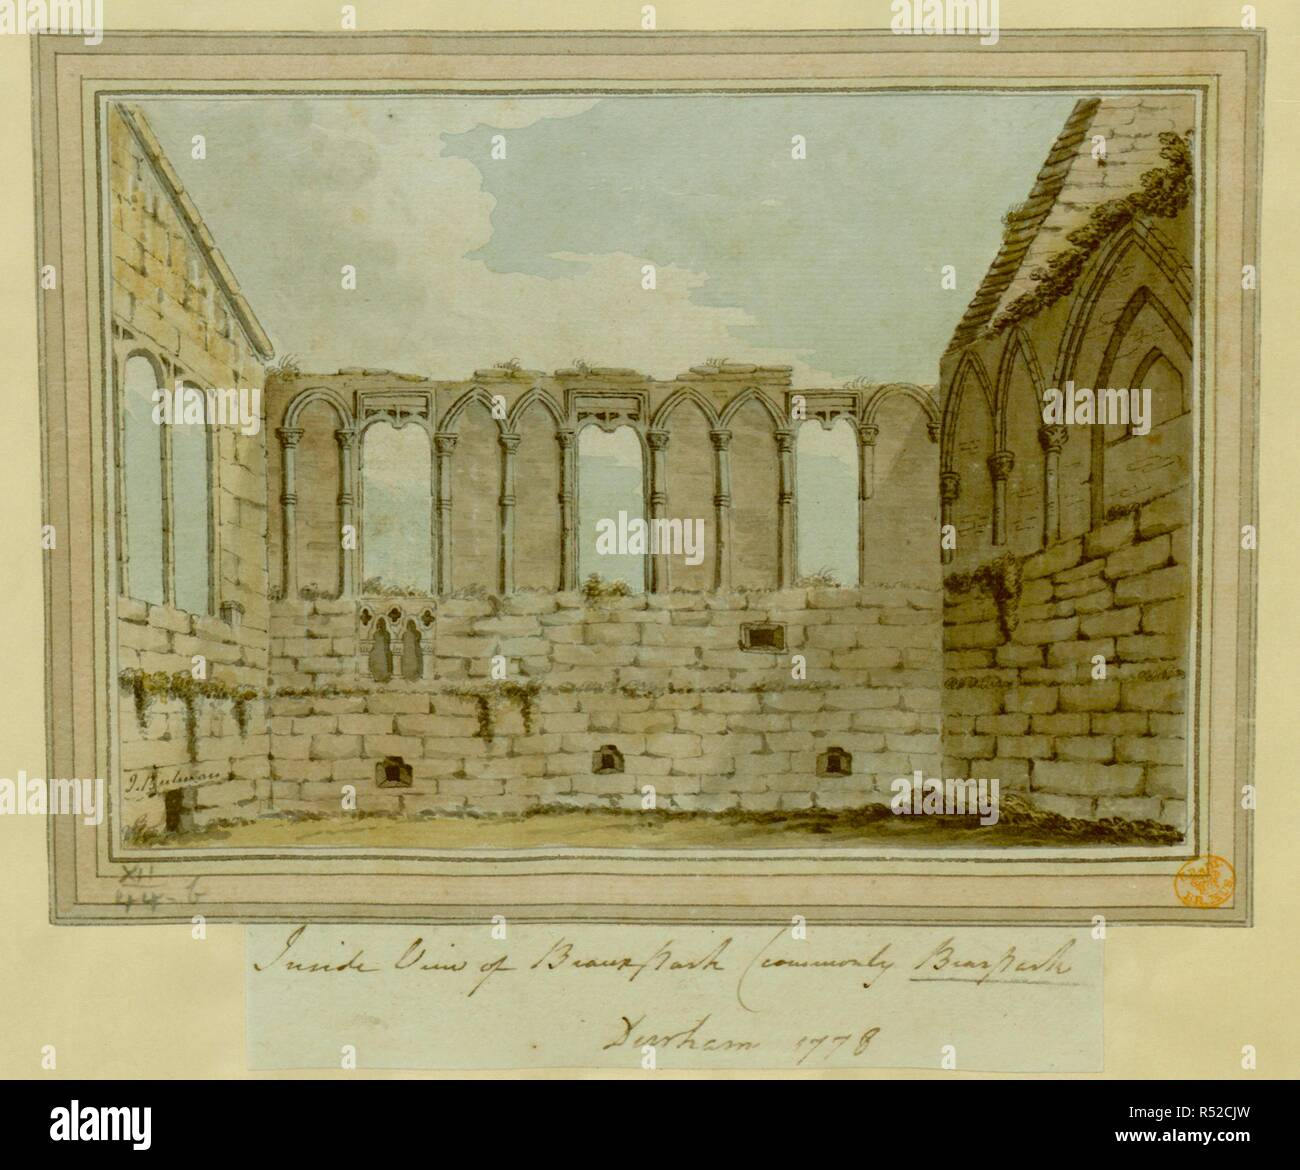 The inside view of the ruins of the chapel Beaurepaire or Bear Park near Durham. The Chapell at Bearpark near Durham 1783. 1783. Source: Maps K.Top.12.44.b. Language: English. Stock Photo